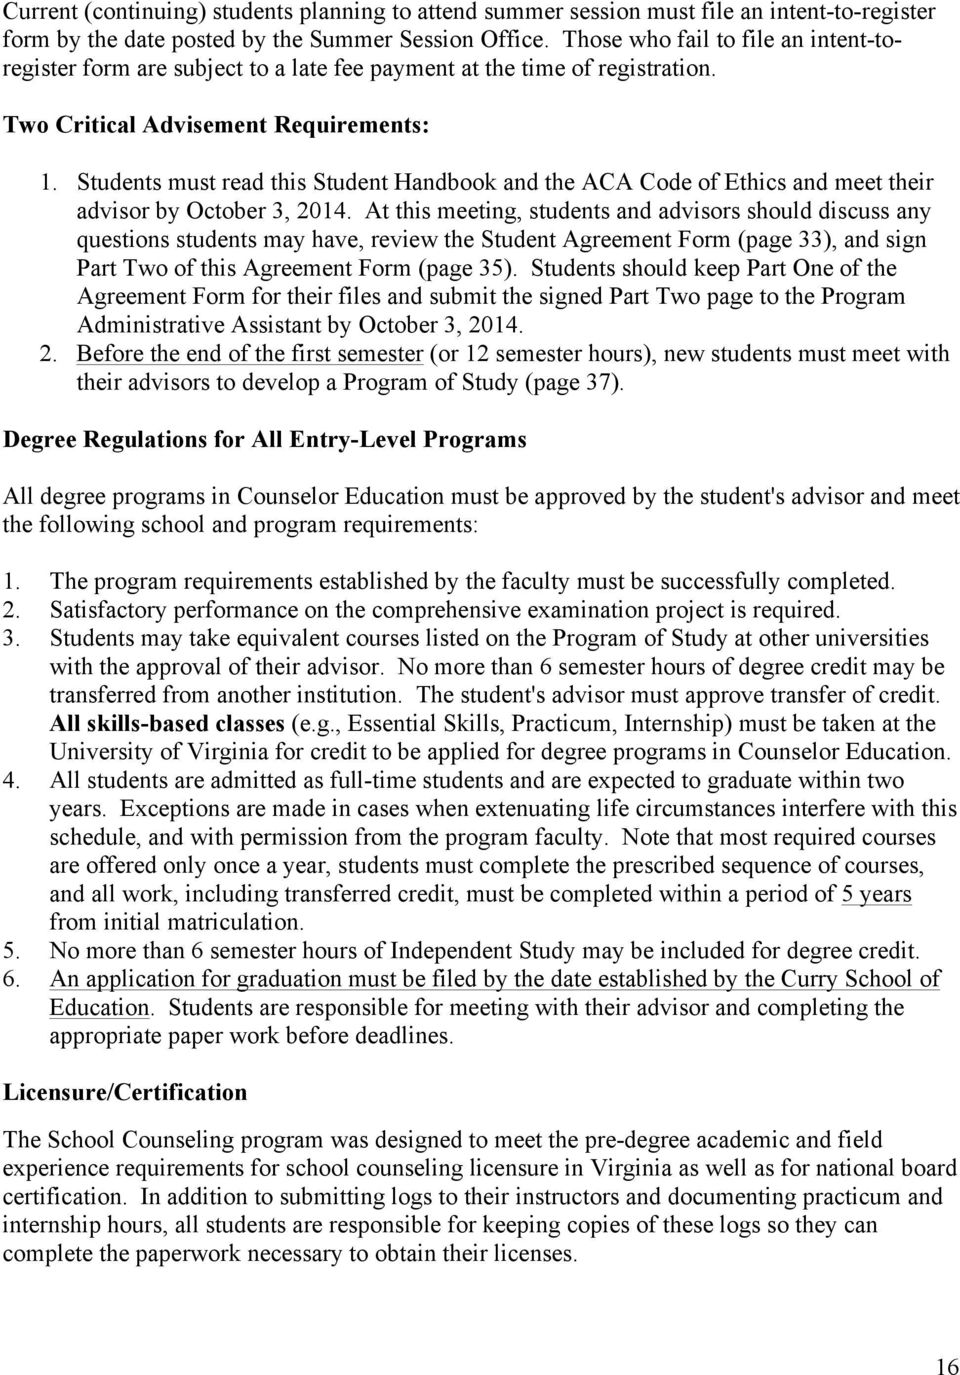 Students must read this Student Handbook and the ACA Code of Ethics and meet their advisor by October 3, 2014.